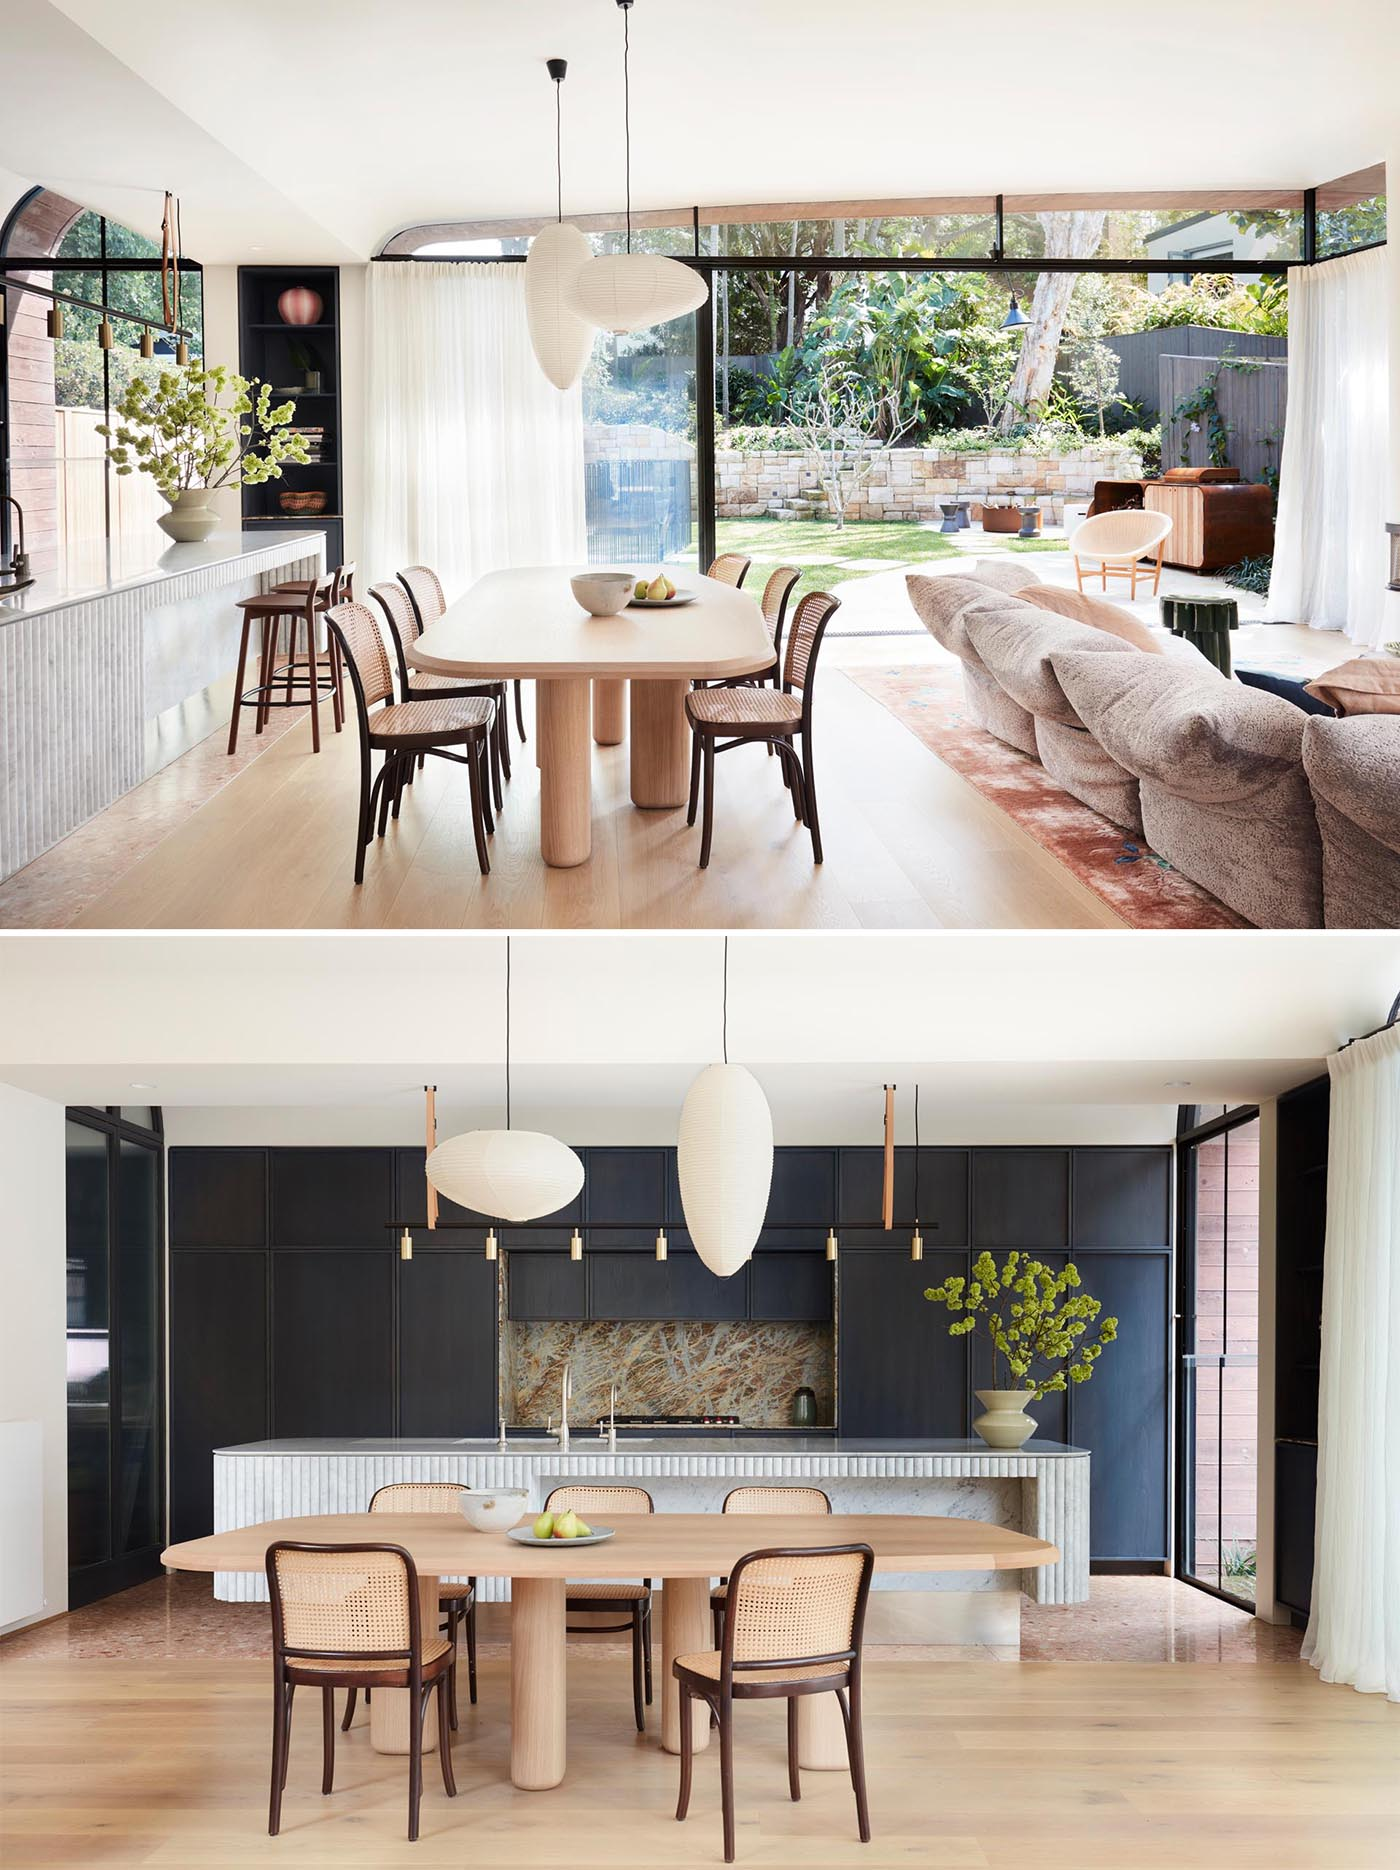 This dining area is used to separate the living room and kitchen, and is anchored by two pendant lights.